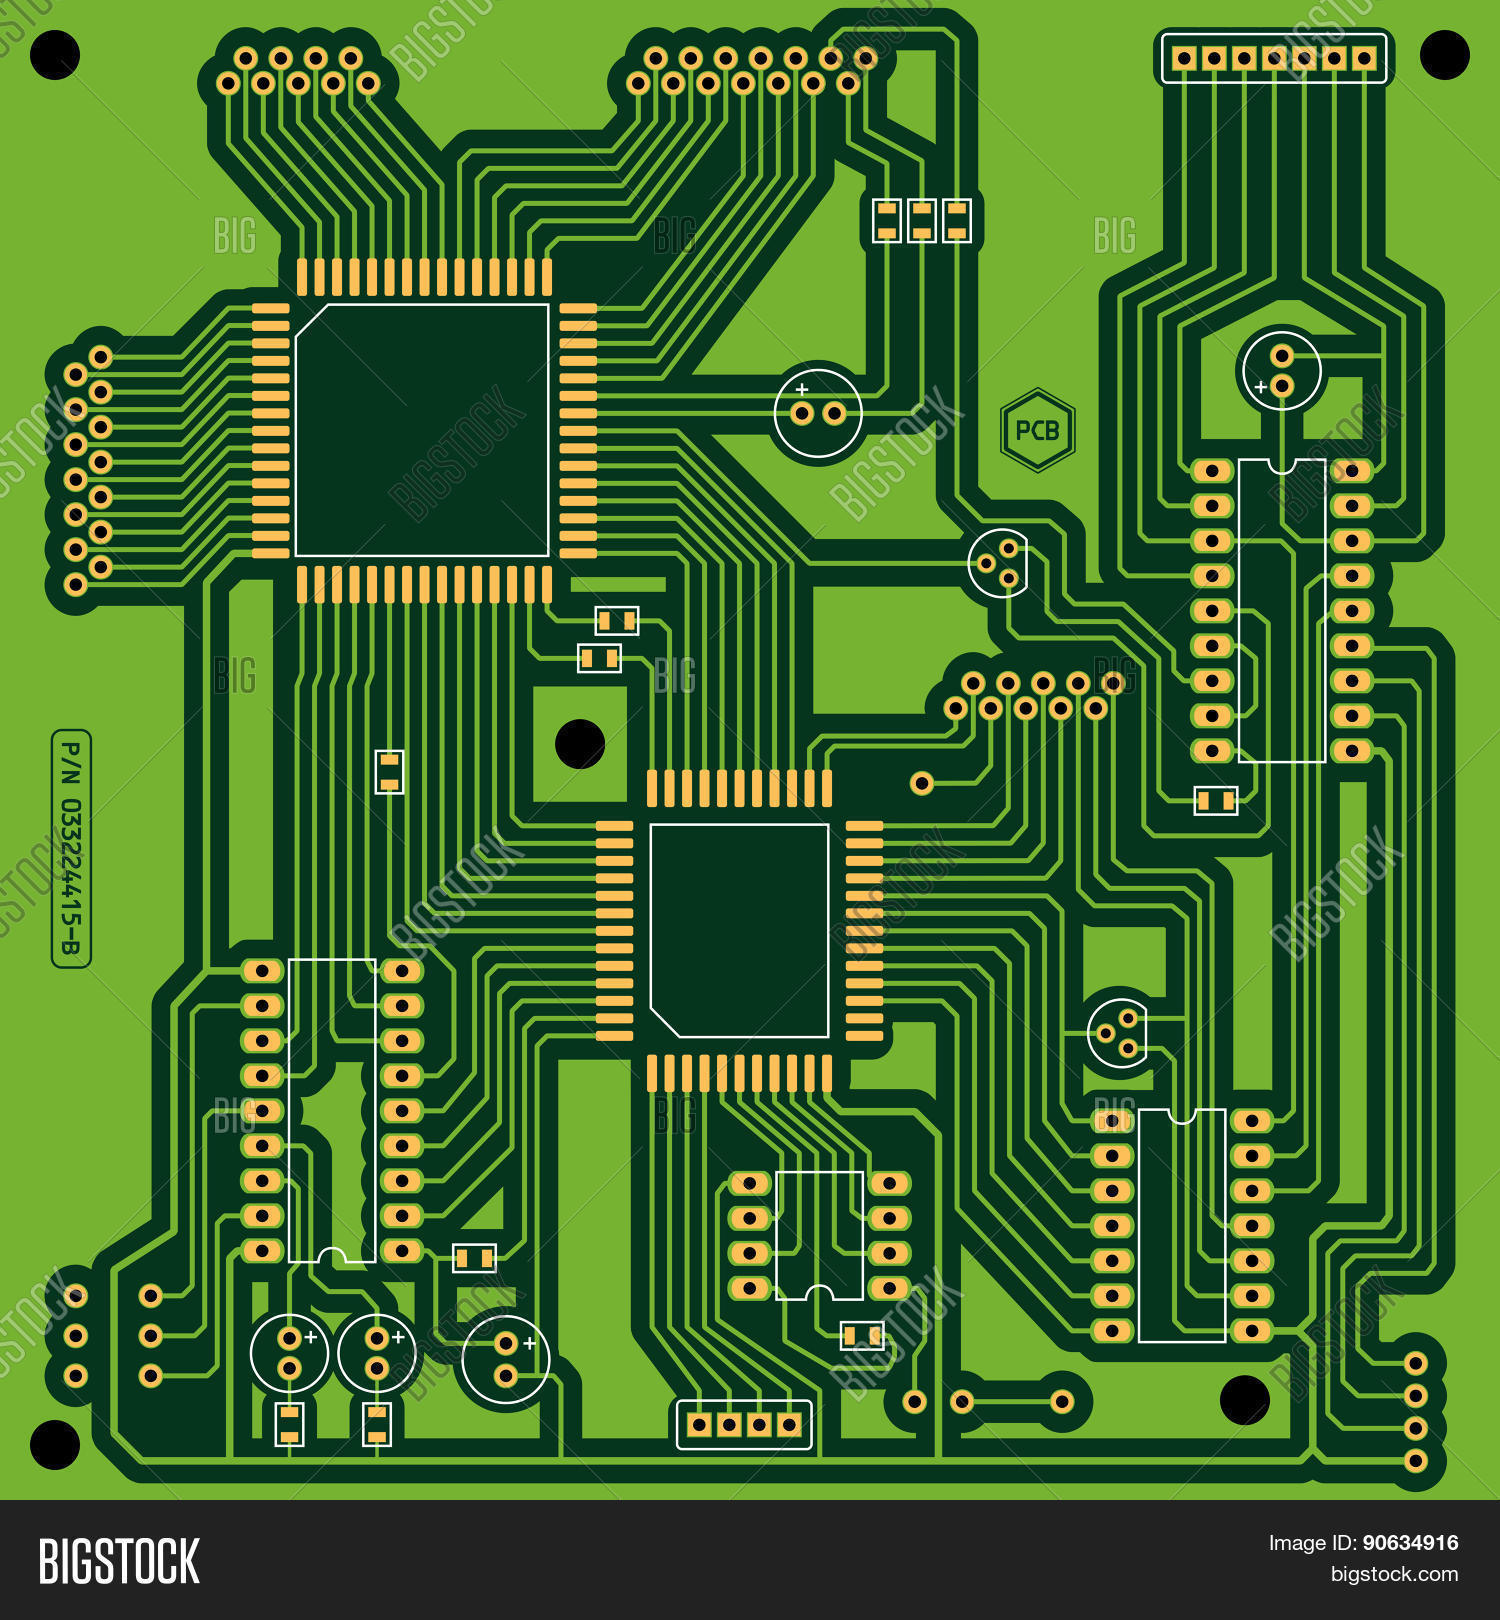 Printed Circuit Board Vector Photo Free Trial Bigstock Electronic Royalty Stock Photography Close Image Preview